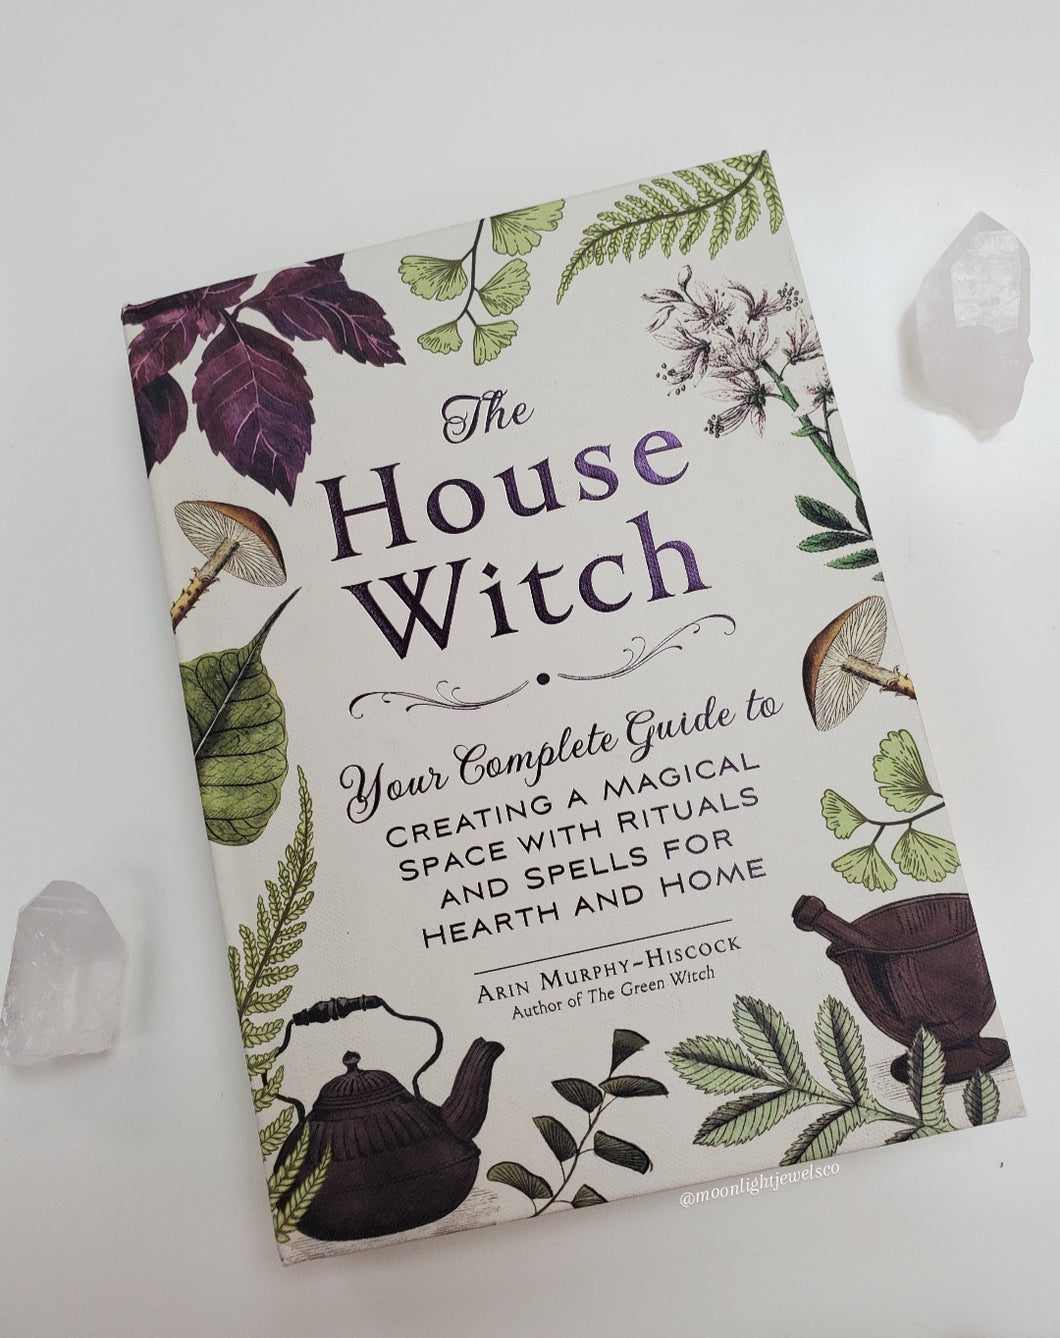 House Witch - Your Complete Guide to Creating a Magical Space with Rituals and Spells for Hearth and Home